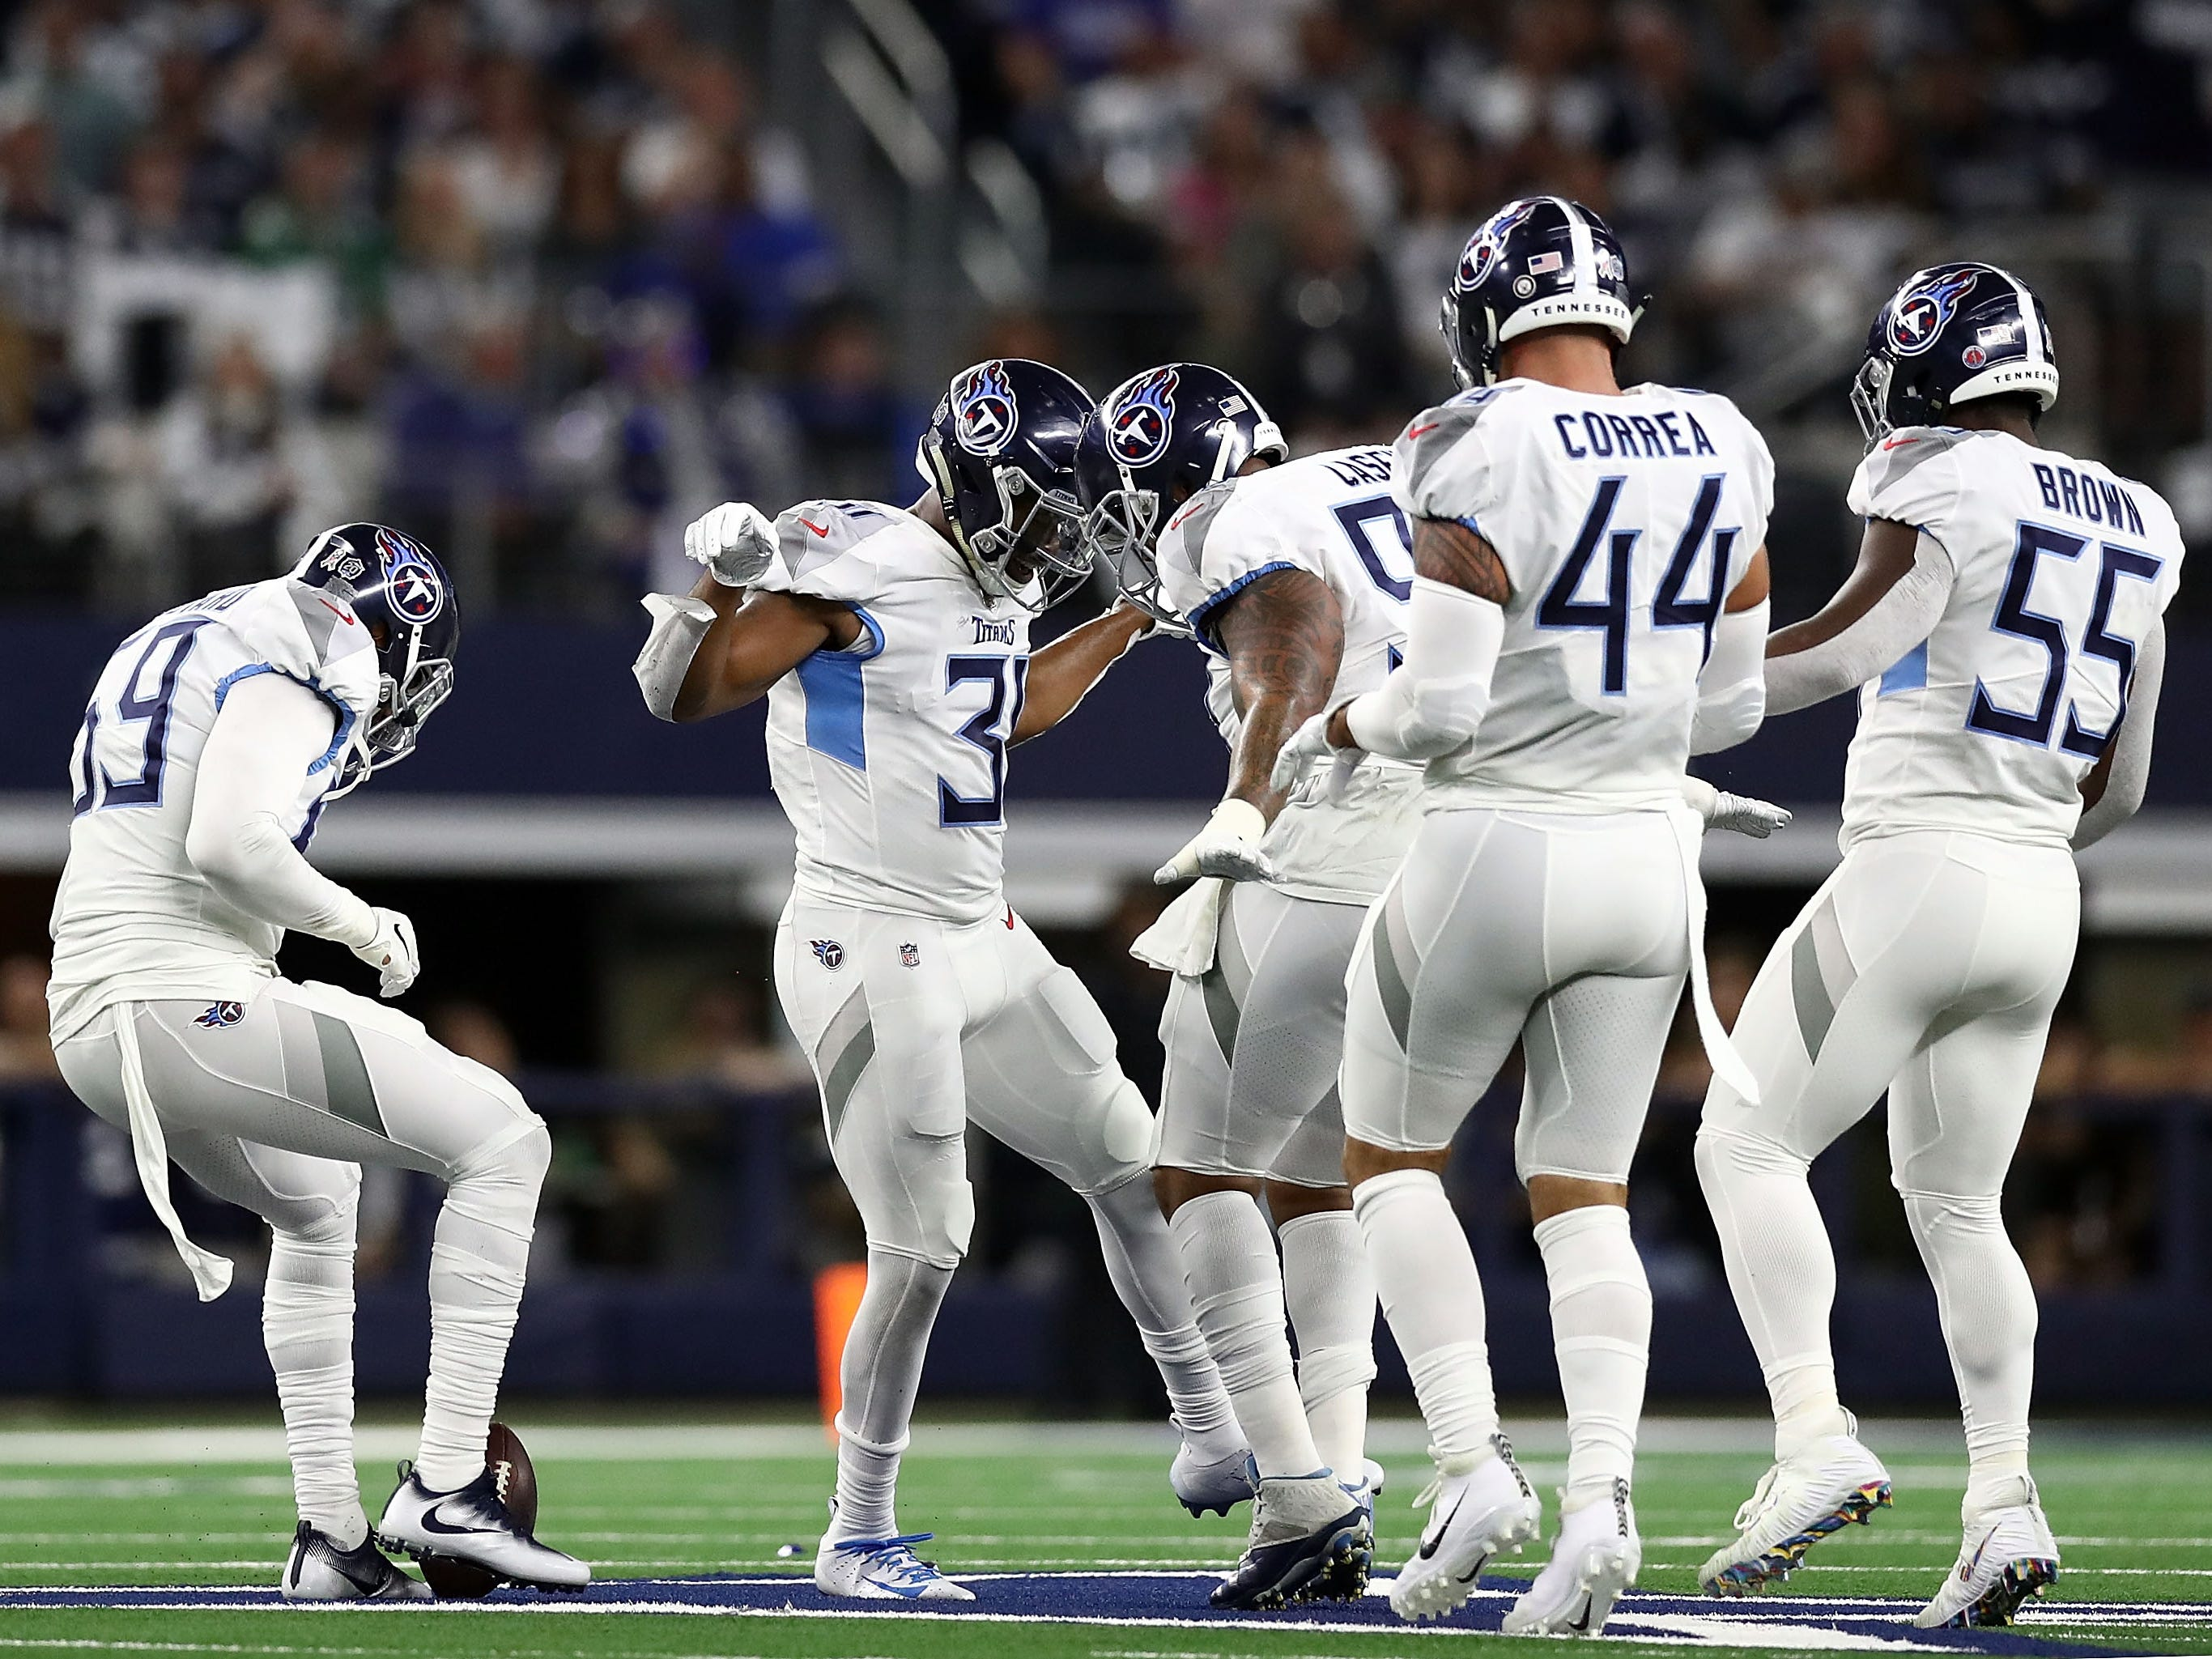 Tennessee Titans players celebrate a first quarter interception by Kevin Byard (31) on the Dallas Cowboys midfield star logo at AT&T Stadium. The Titans won the game, 28-14.